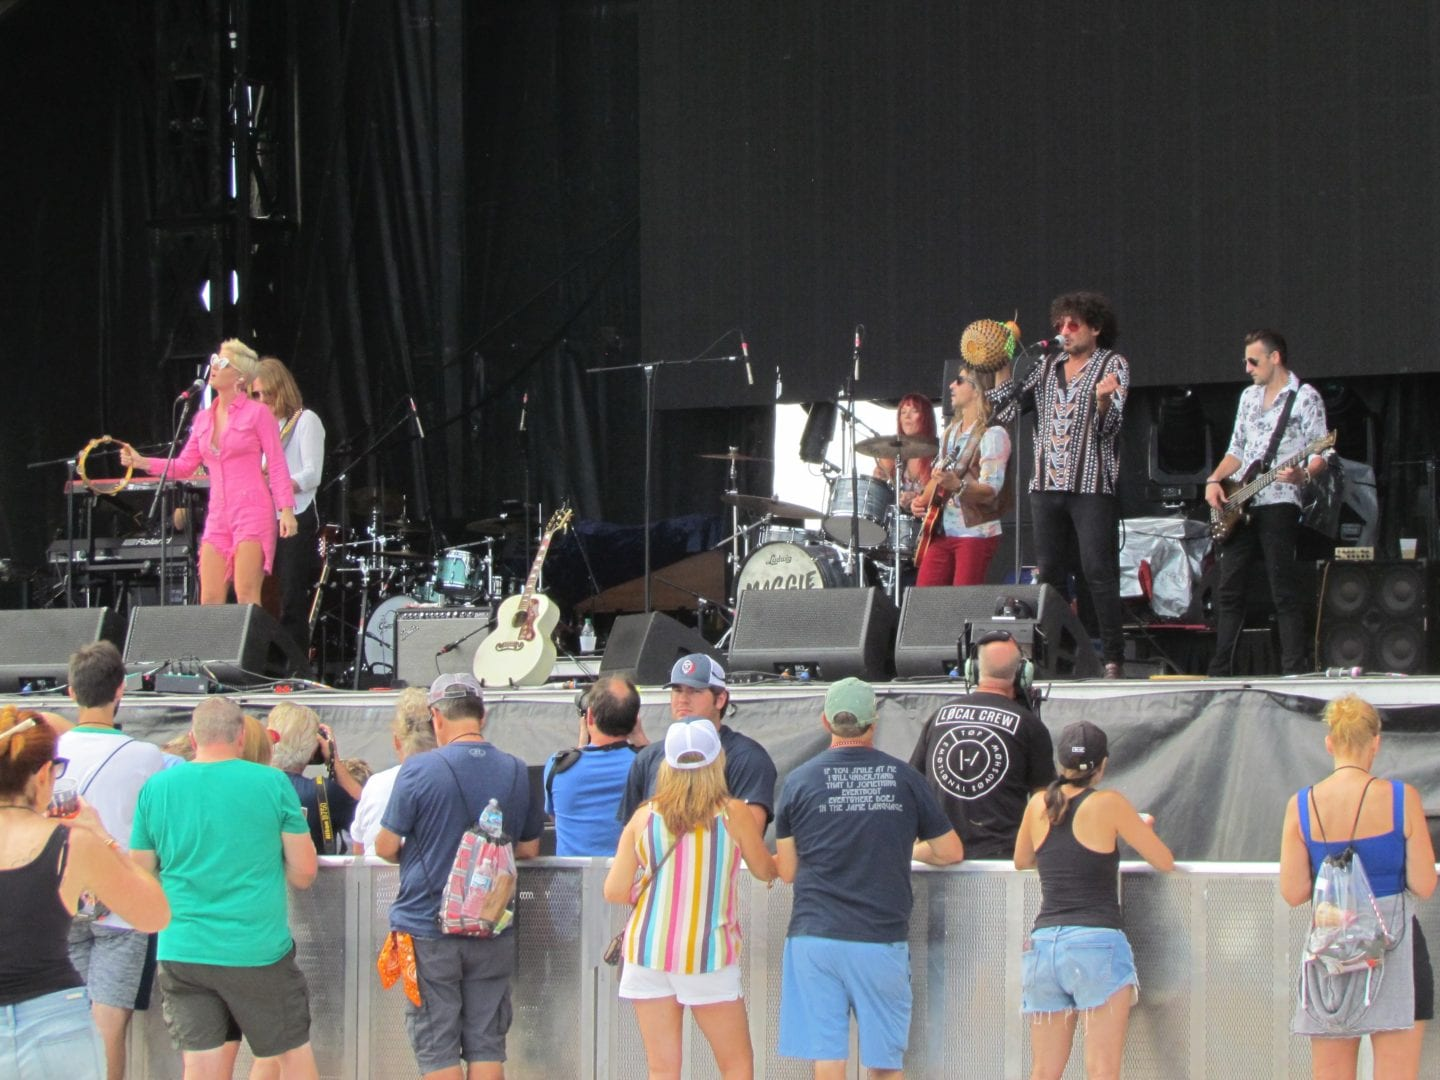 Crowds near Maggie Rose and the stage